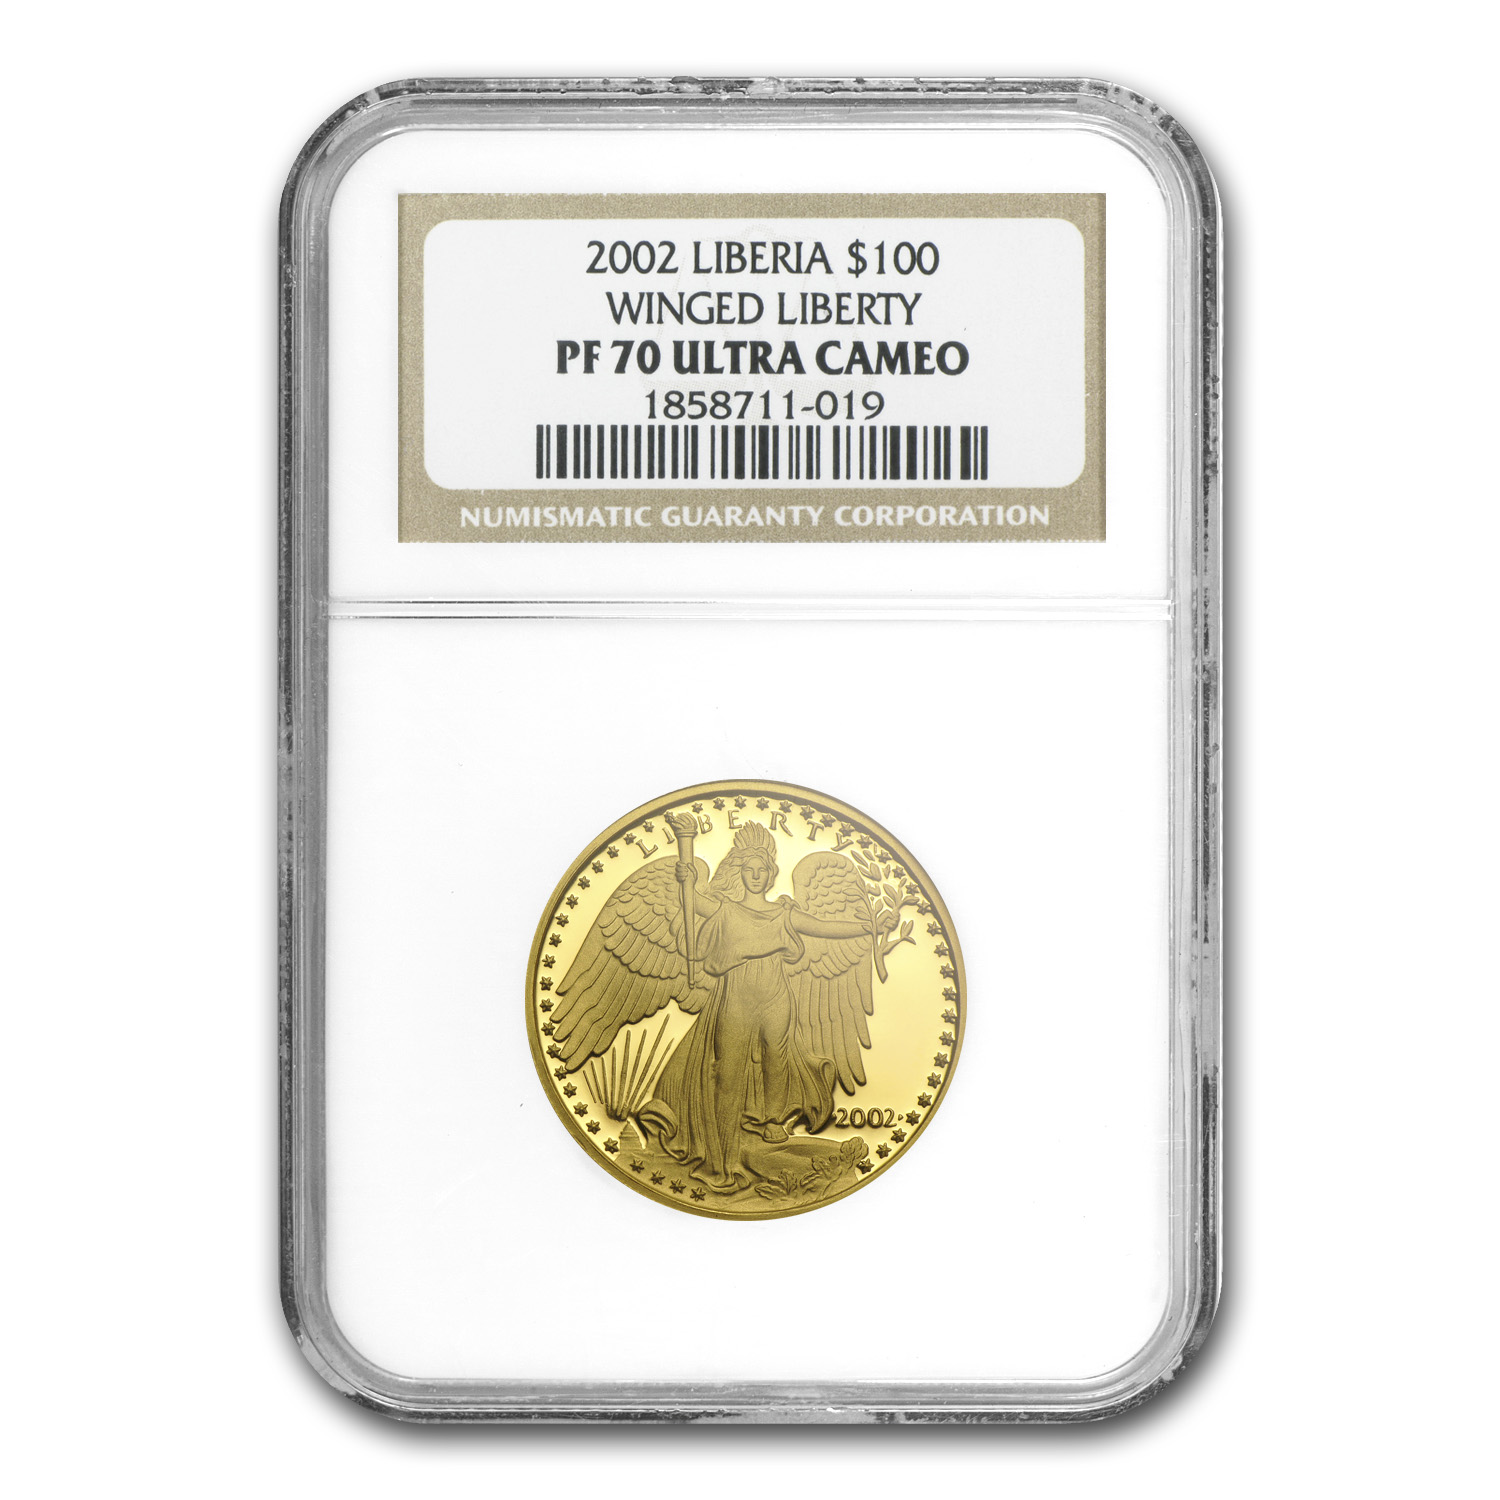 2002 Liberia 1 oz Proof Gold Winged Liberty PF-70 NGC